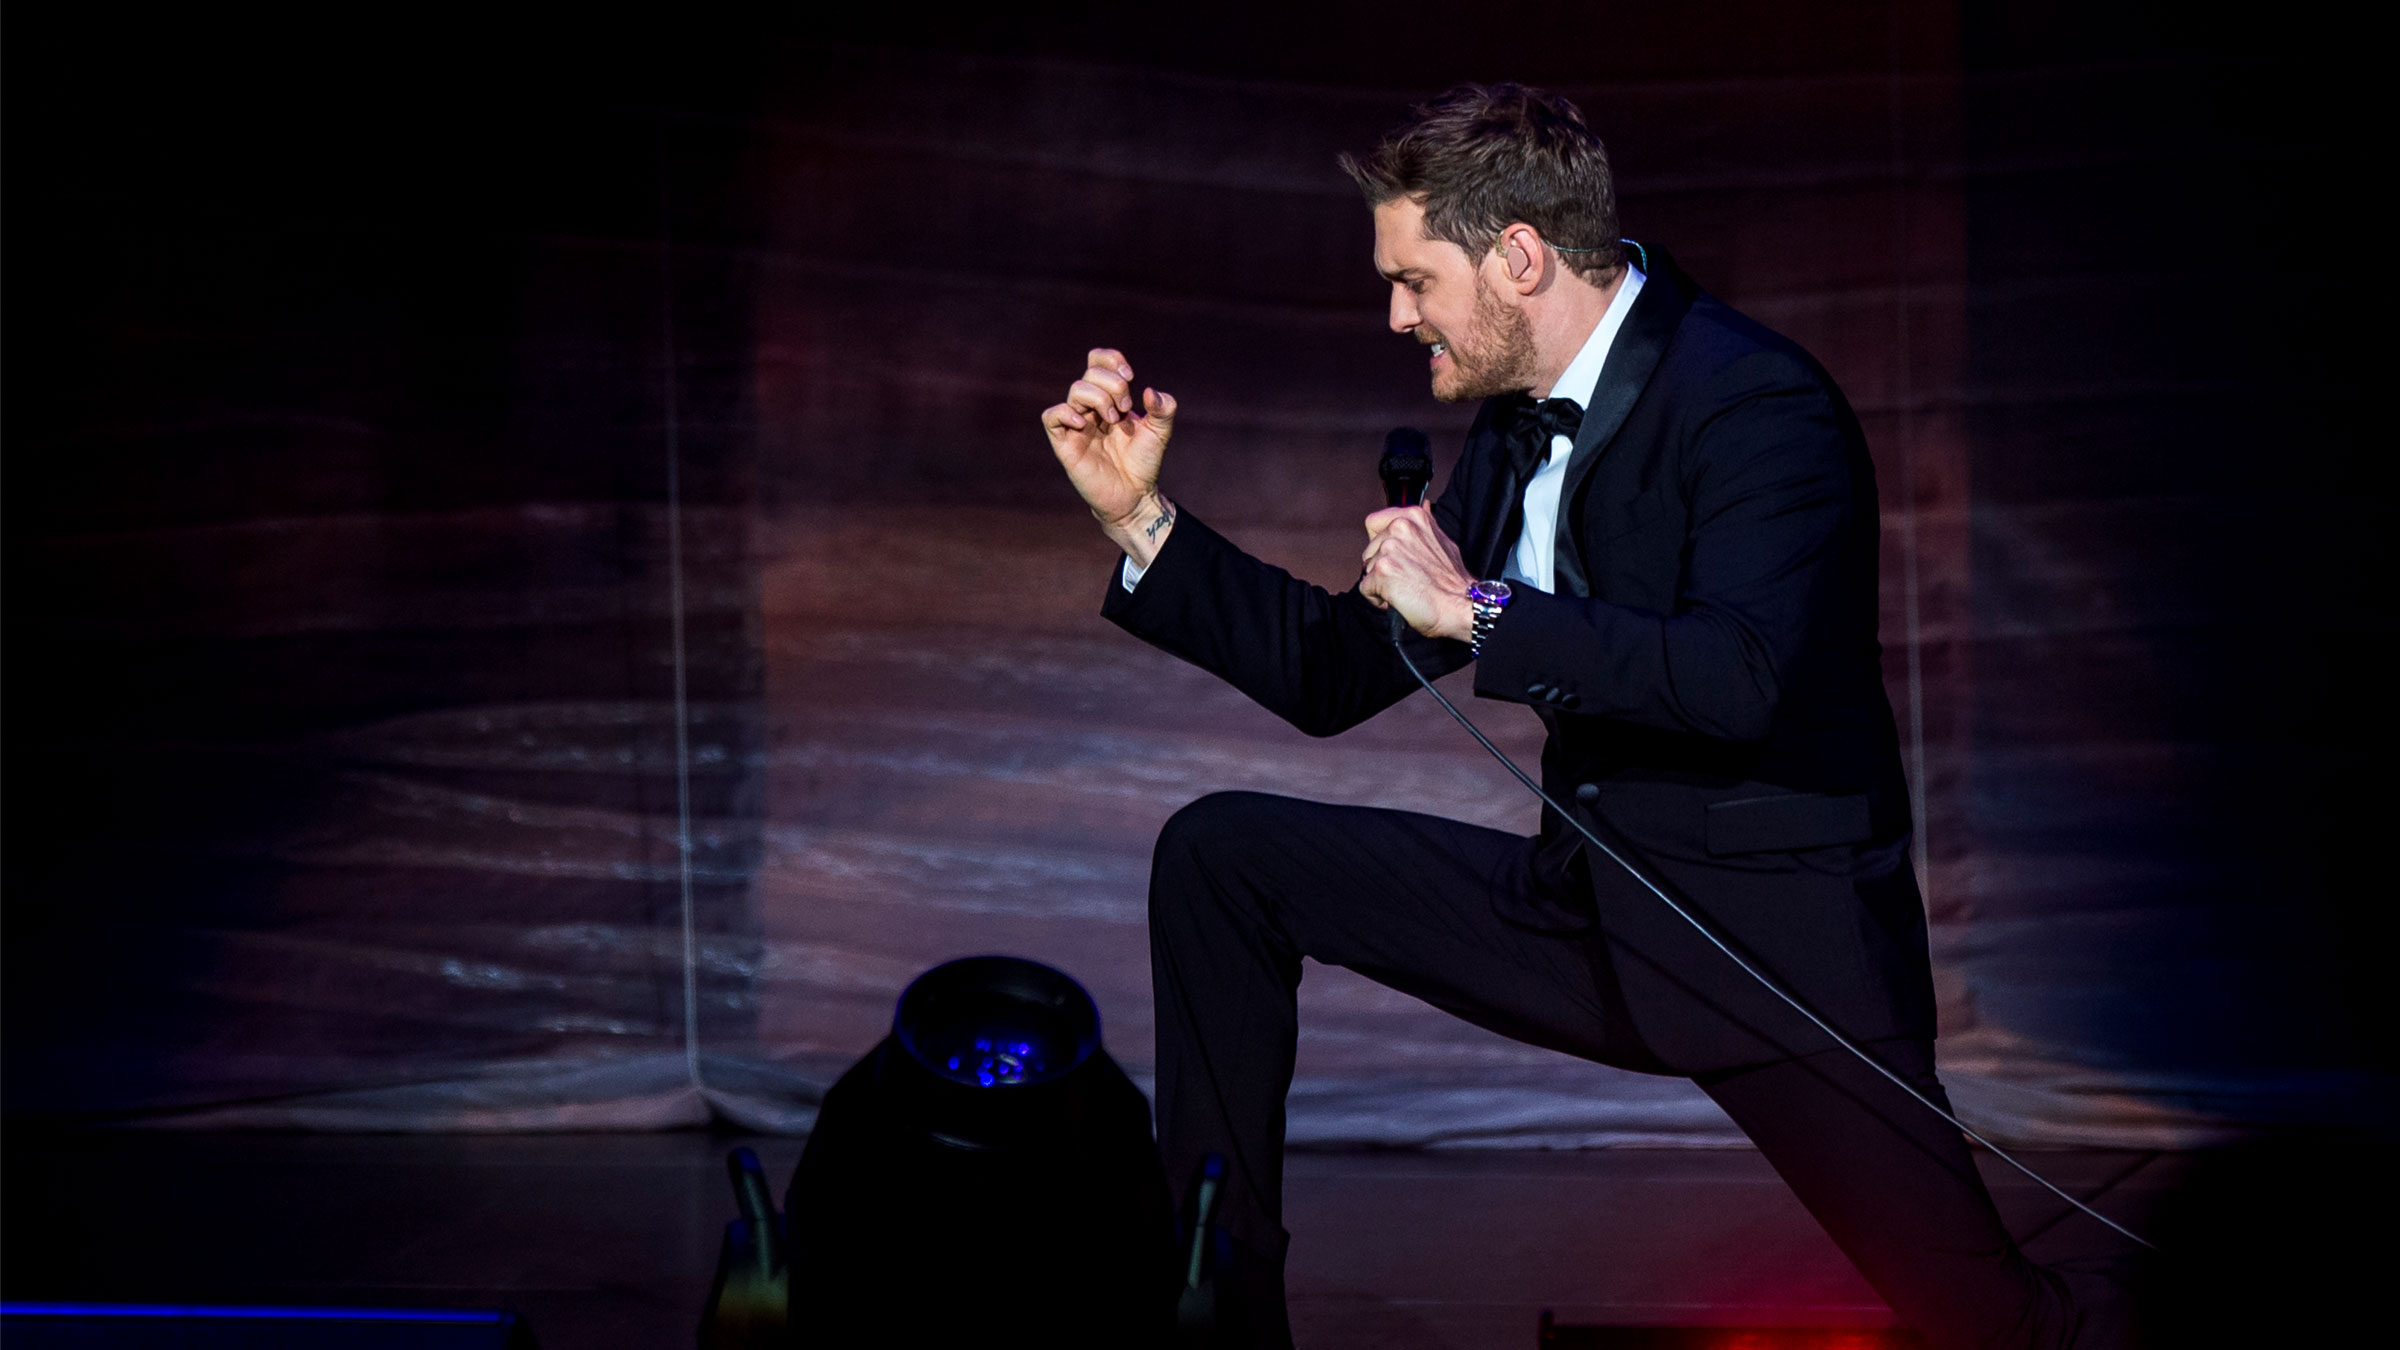 Michael buble teaser